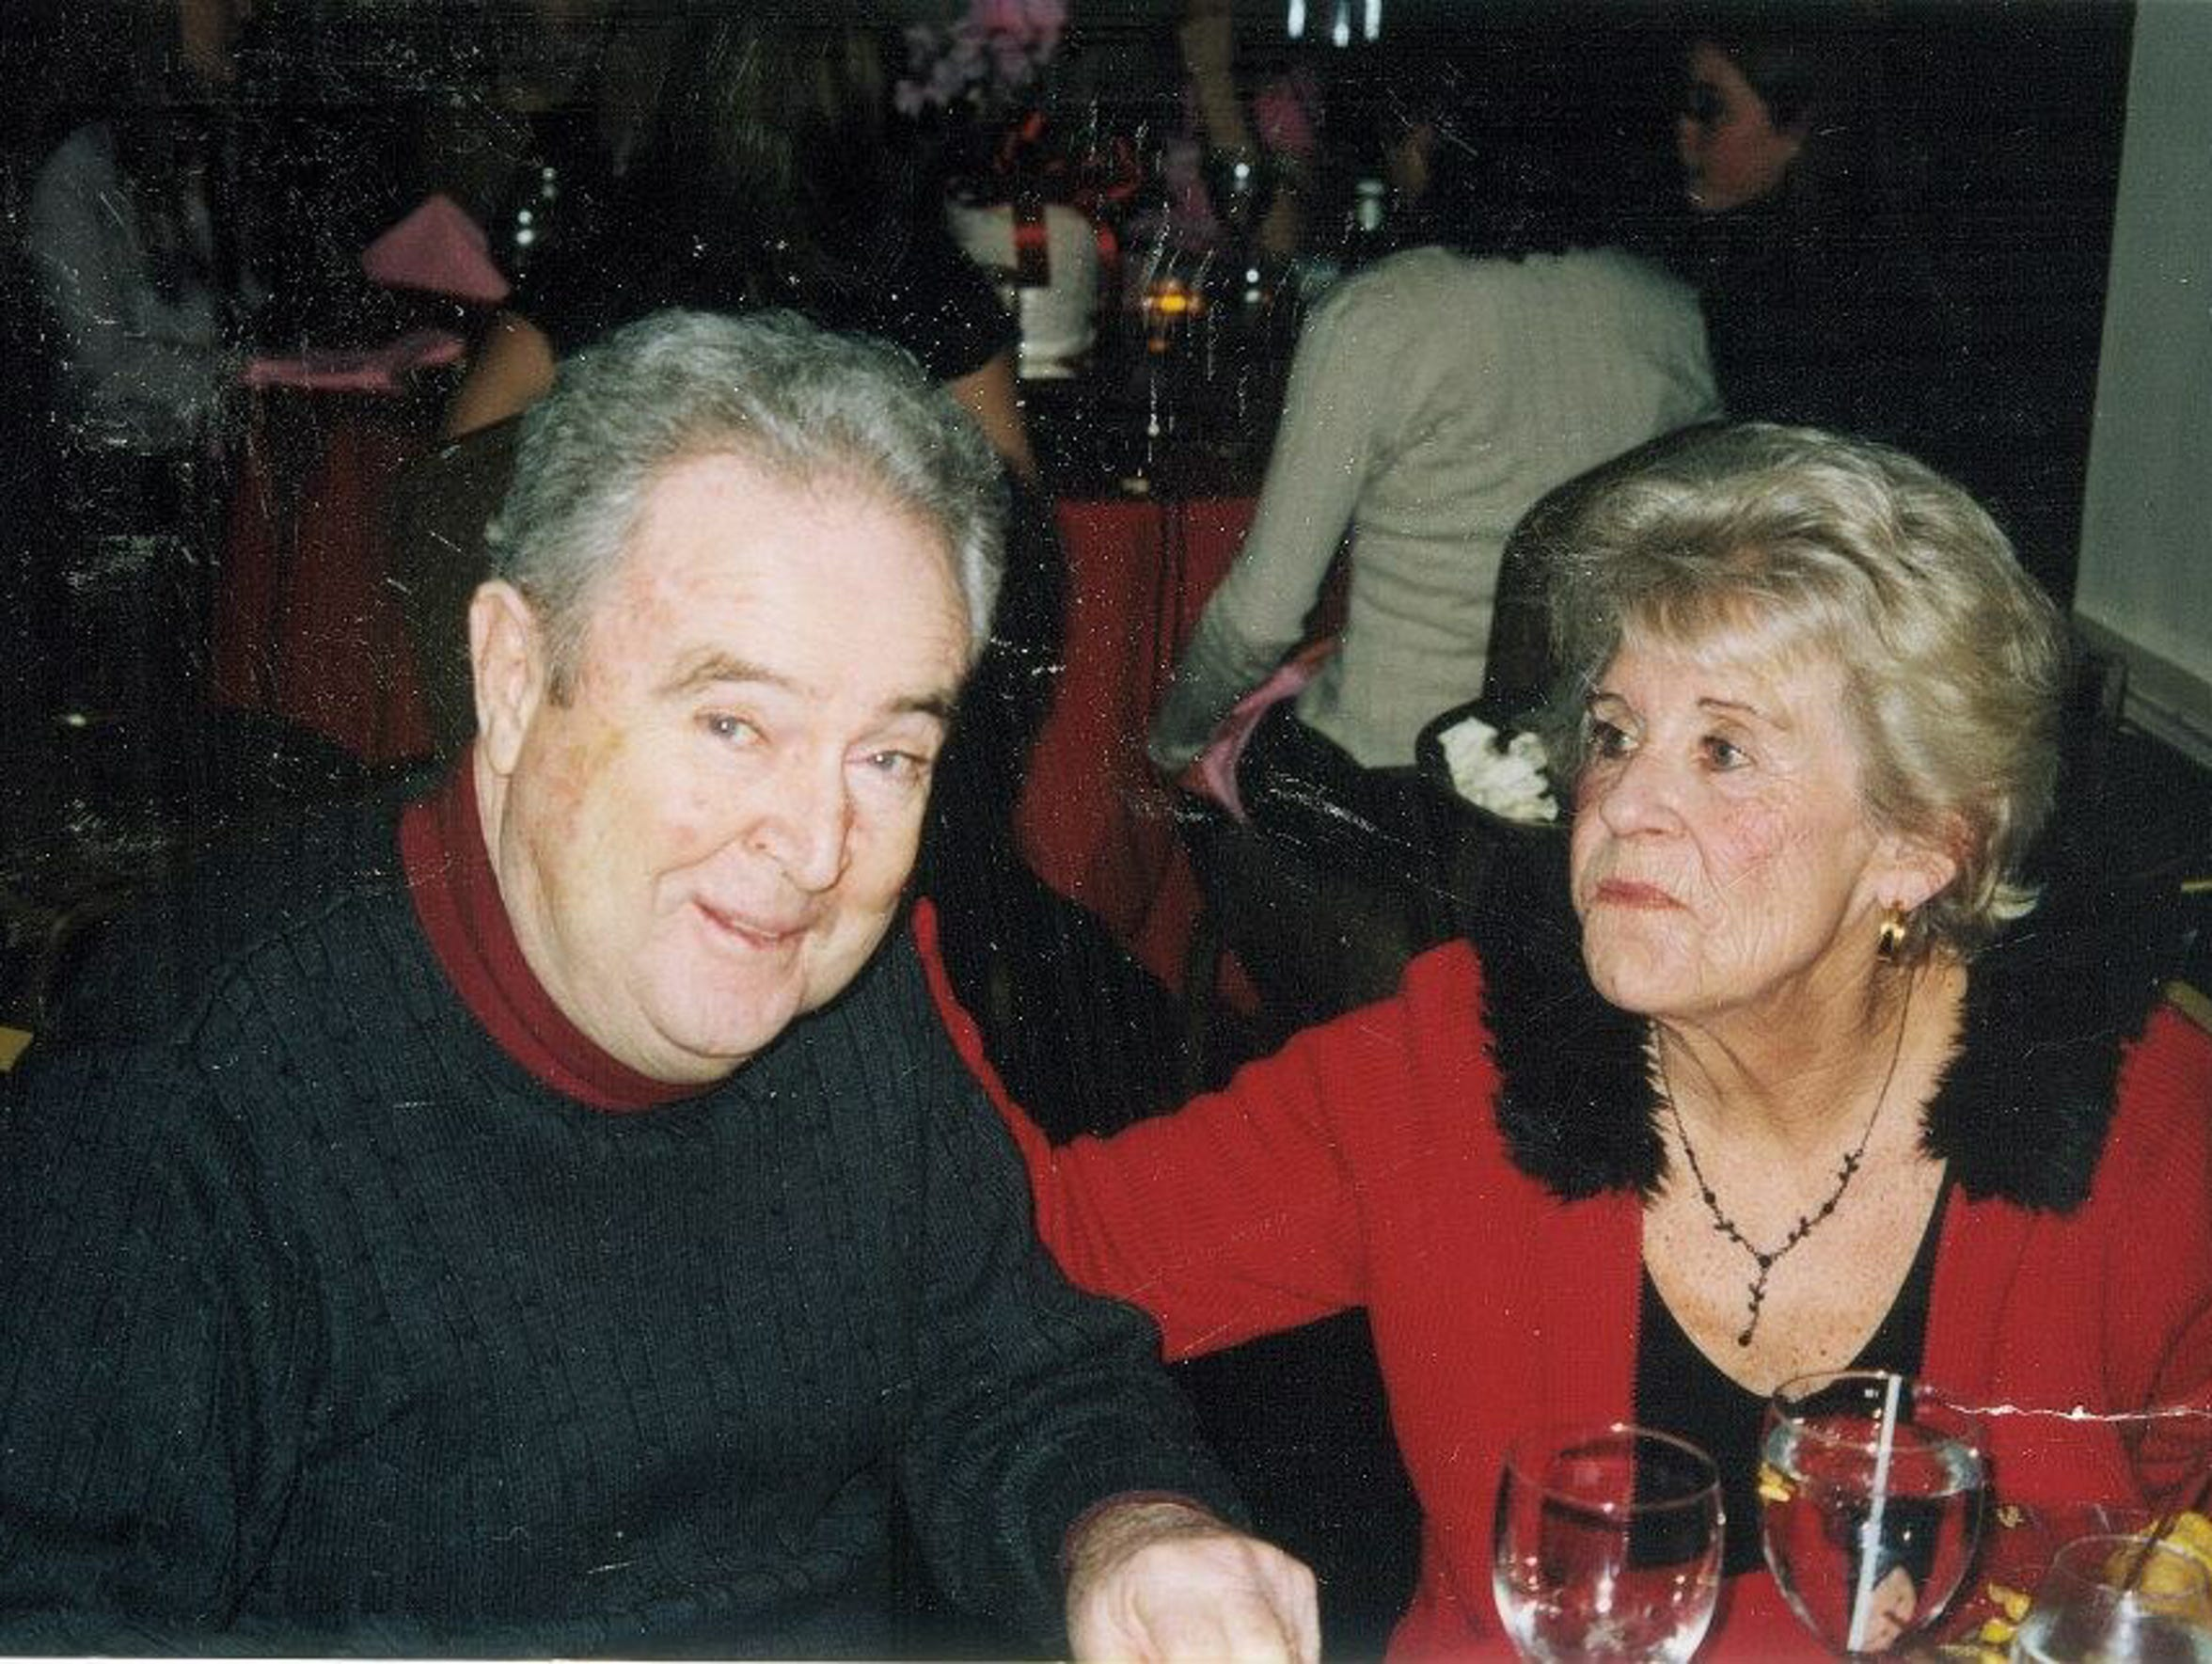 Edward Friel, left, and his wife, owned a family cabinetry